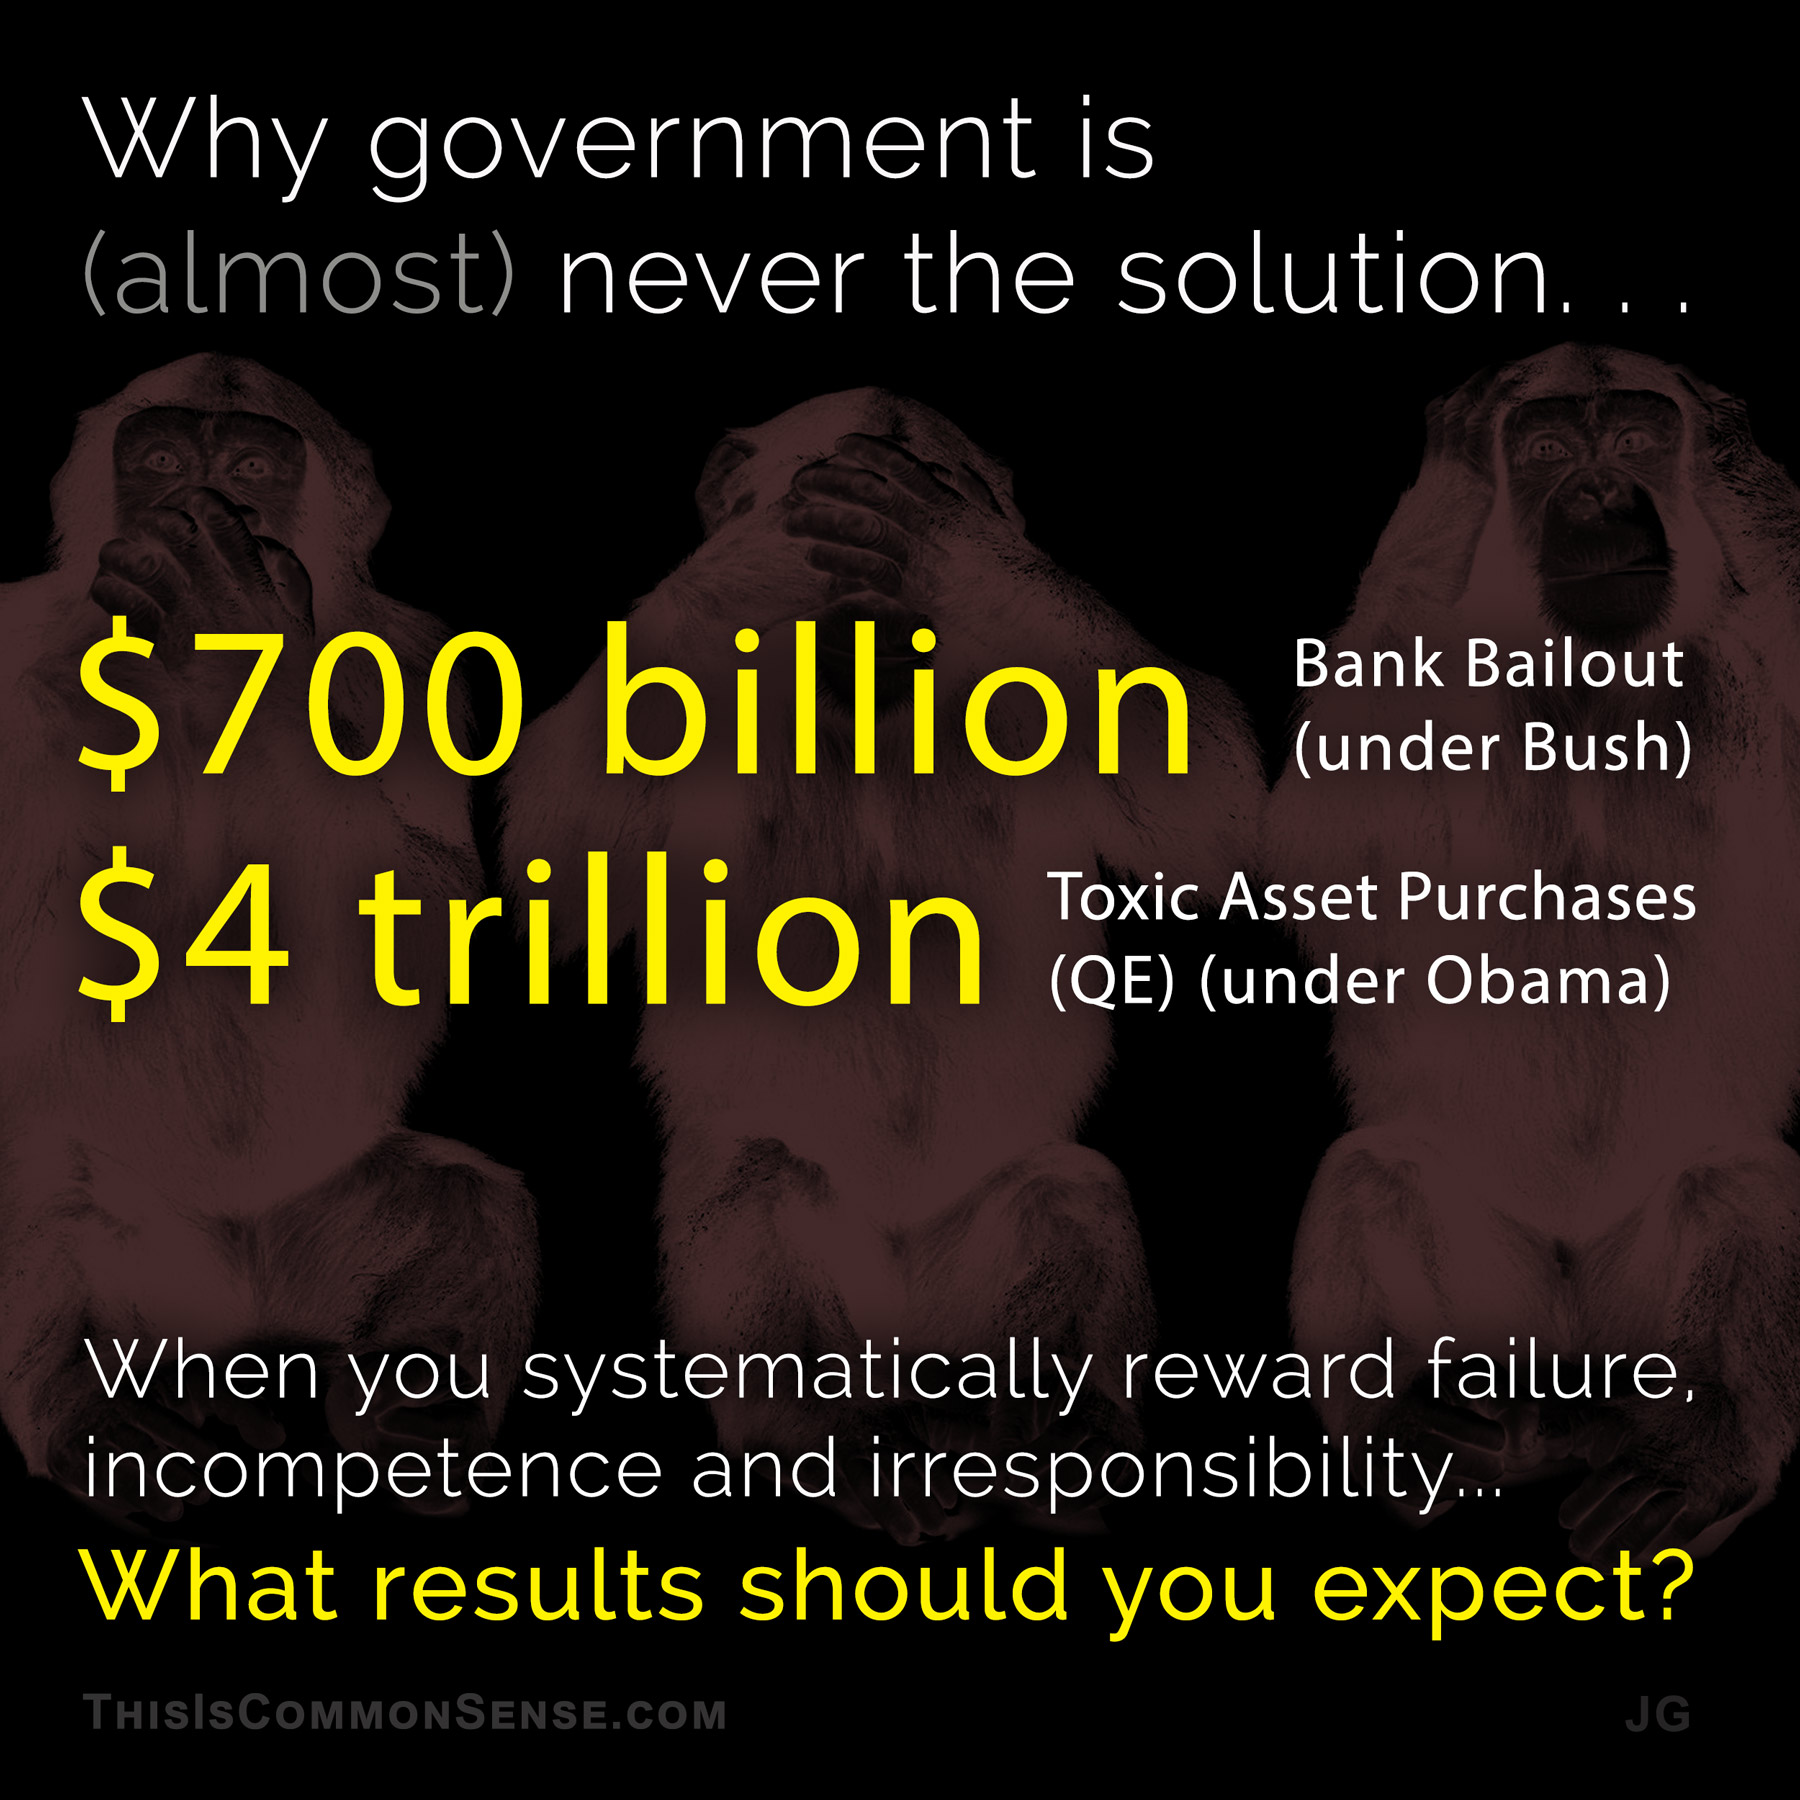 big government, solutions, toxic assets, bank bailout, meme, illustration, Jim Gill, Paul Jacob, Common Sense